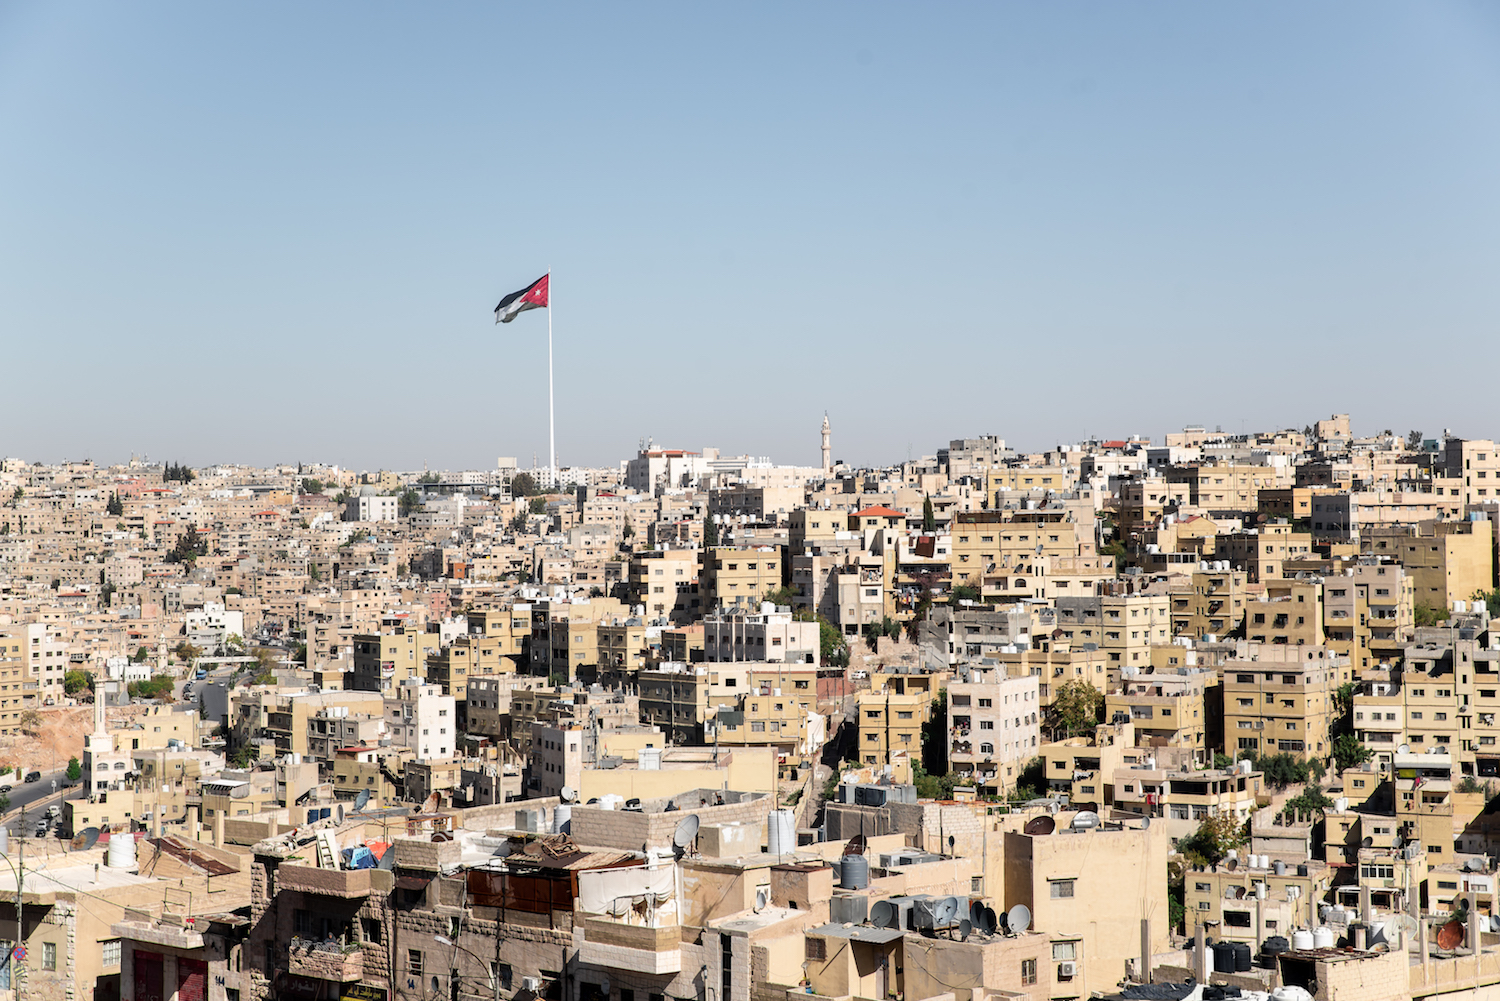 Amman – Jordan's Capital, by Ben Holbrook from DriftwoodJournals.com